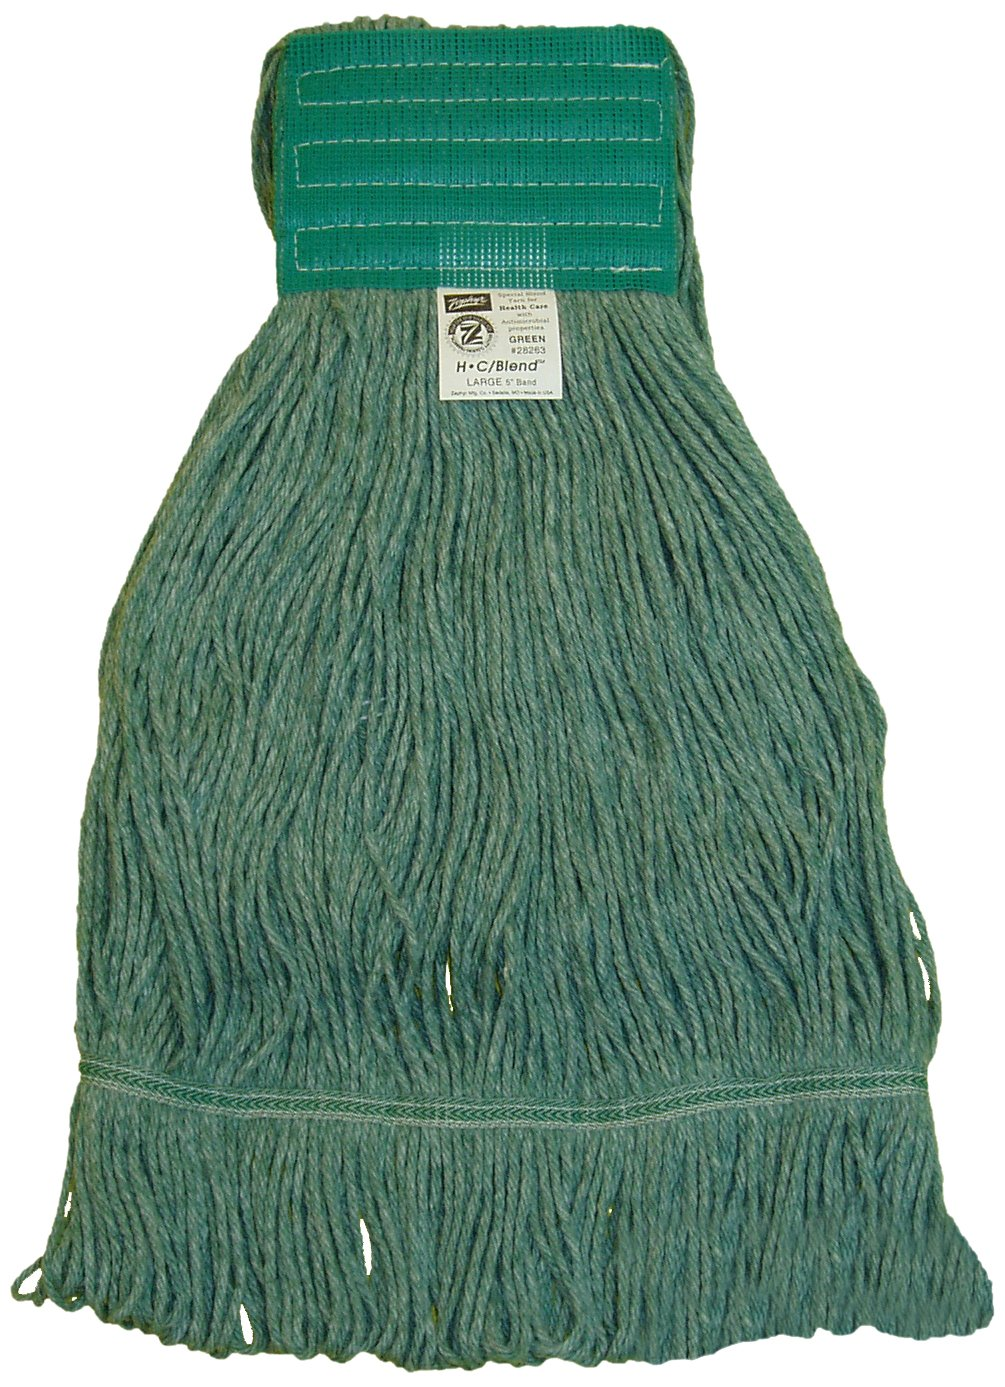 Zephyr 28264 HC/Blend Green 4-Ply Yarn X-large Health Care Loop Mop Head with 5'' Mesh Wide Band (Pack of 12)